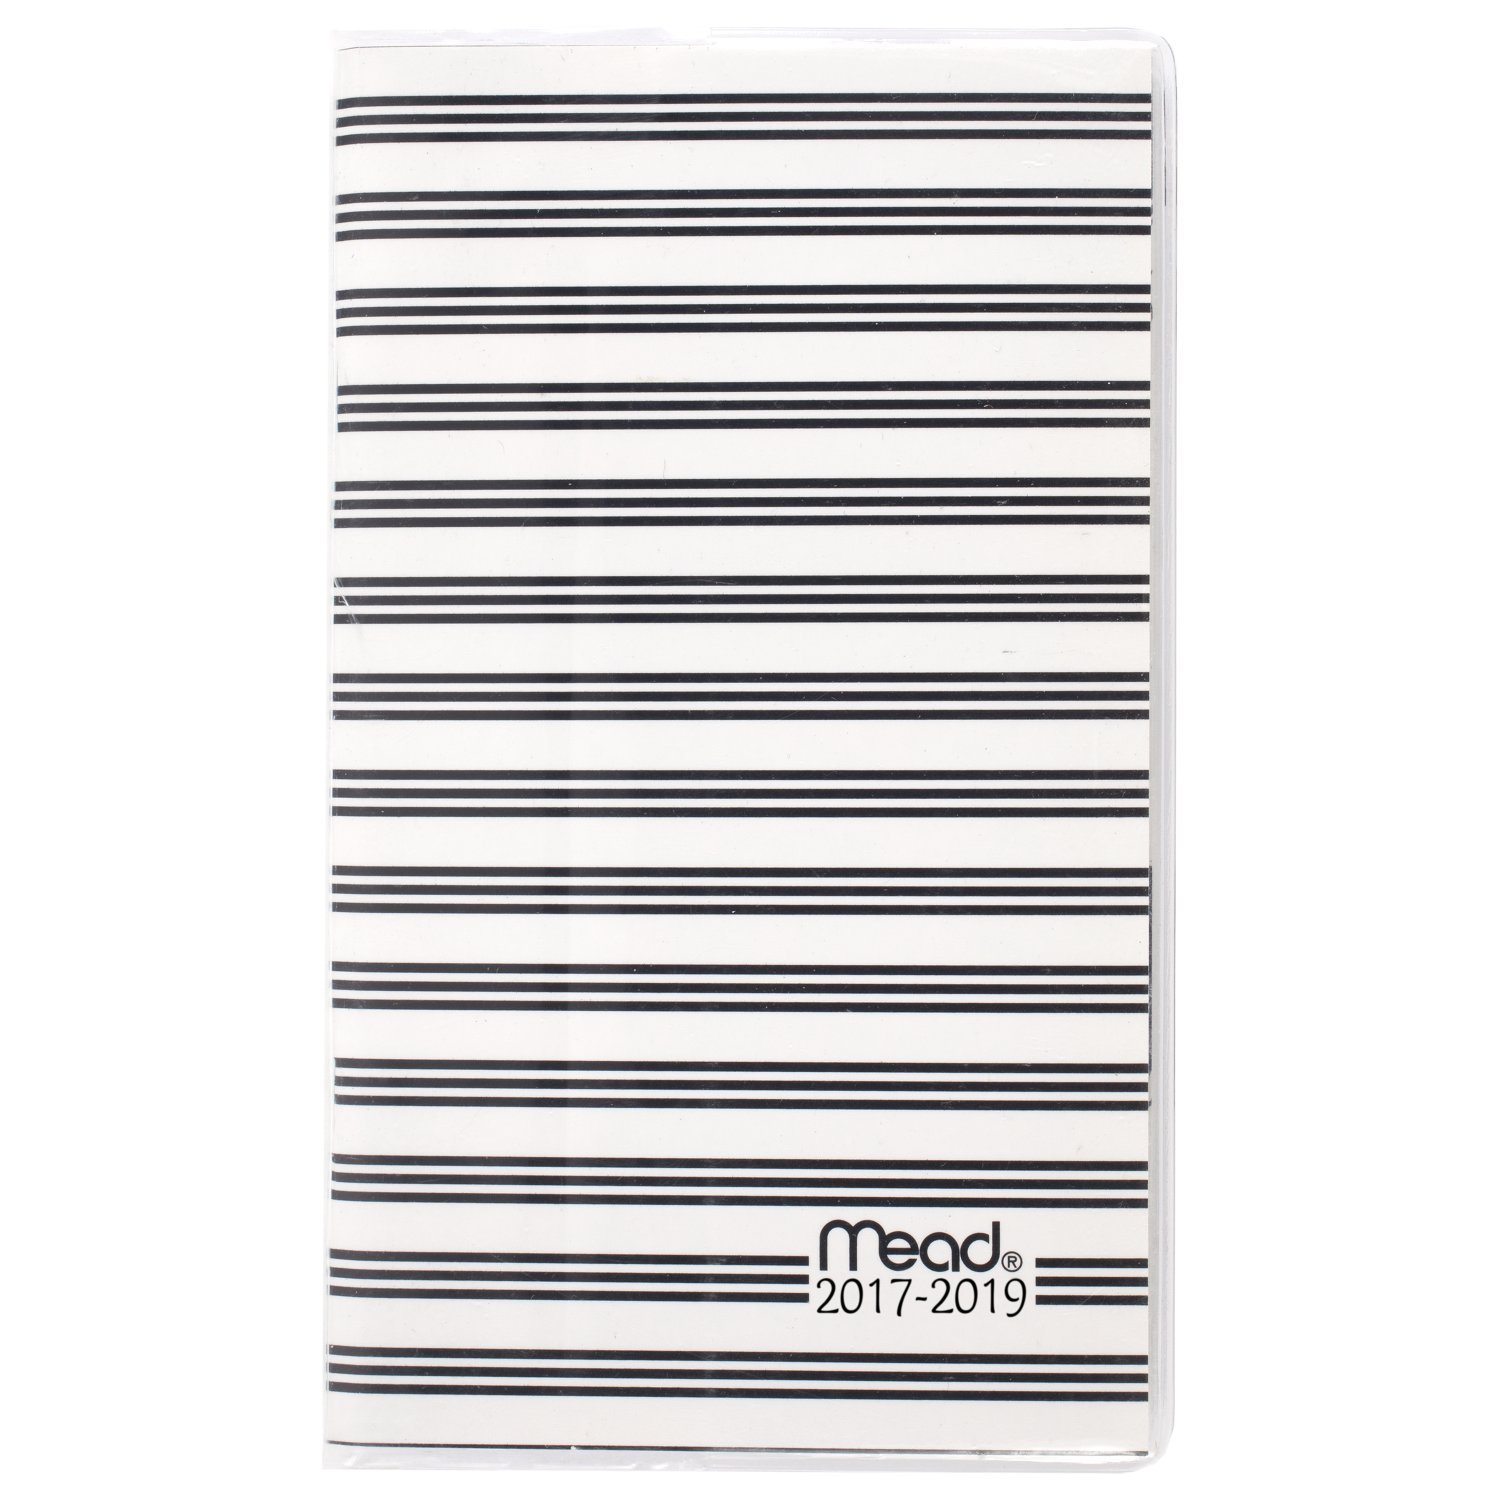 Mead Academic Year Monthly Planner / Appointment Book, July 2017 - June 2019, 2 year, 3-3/8 x 6-3/16'', School, Simplicity, Stripes (CAM301D2)